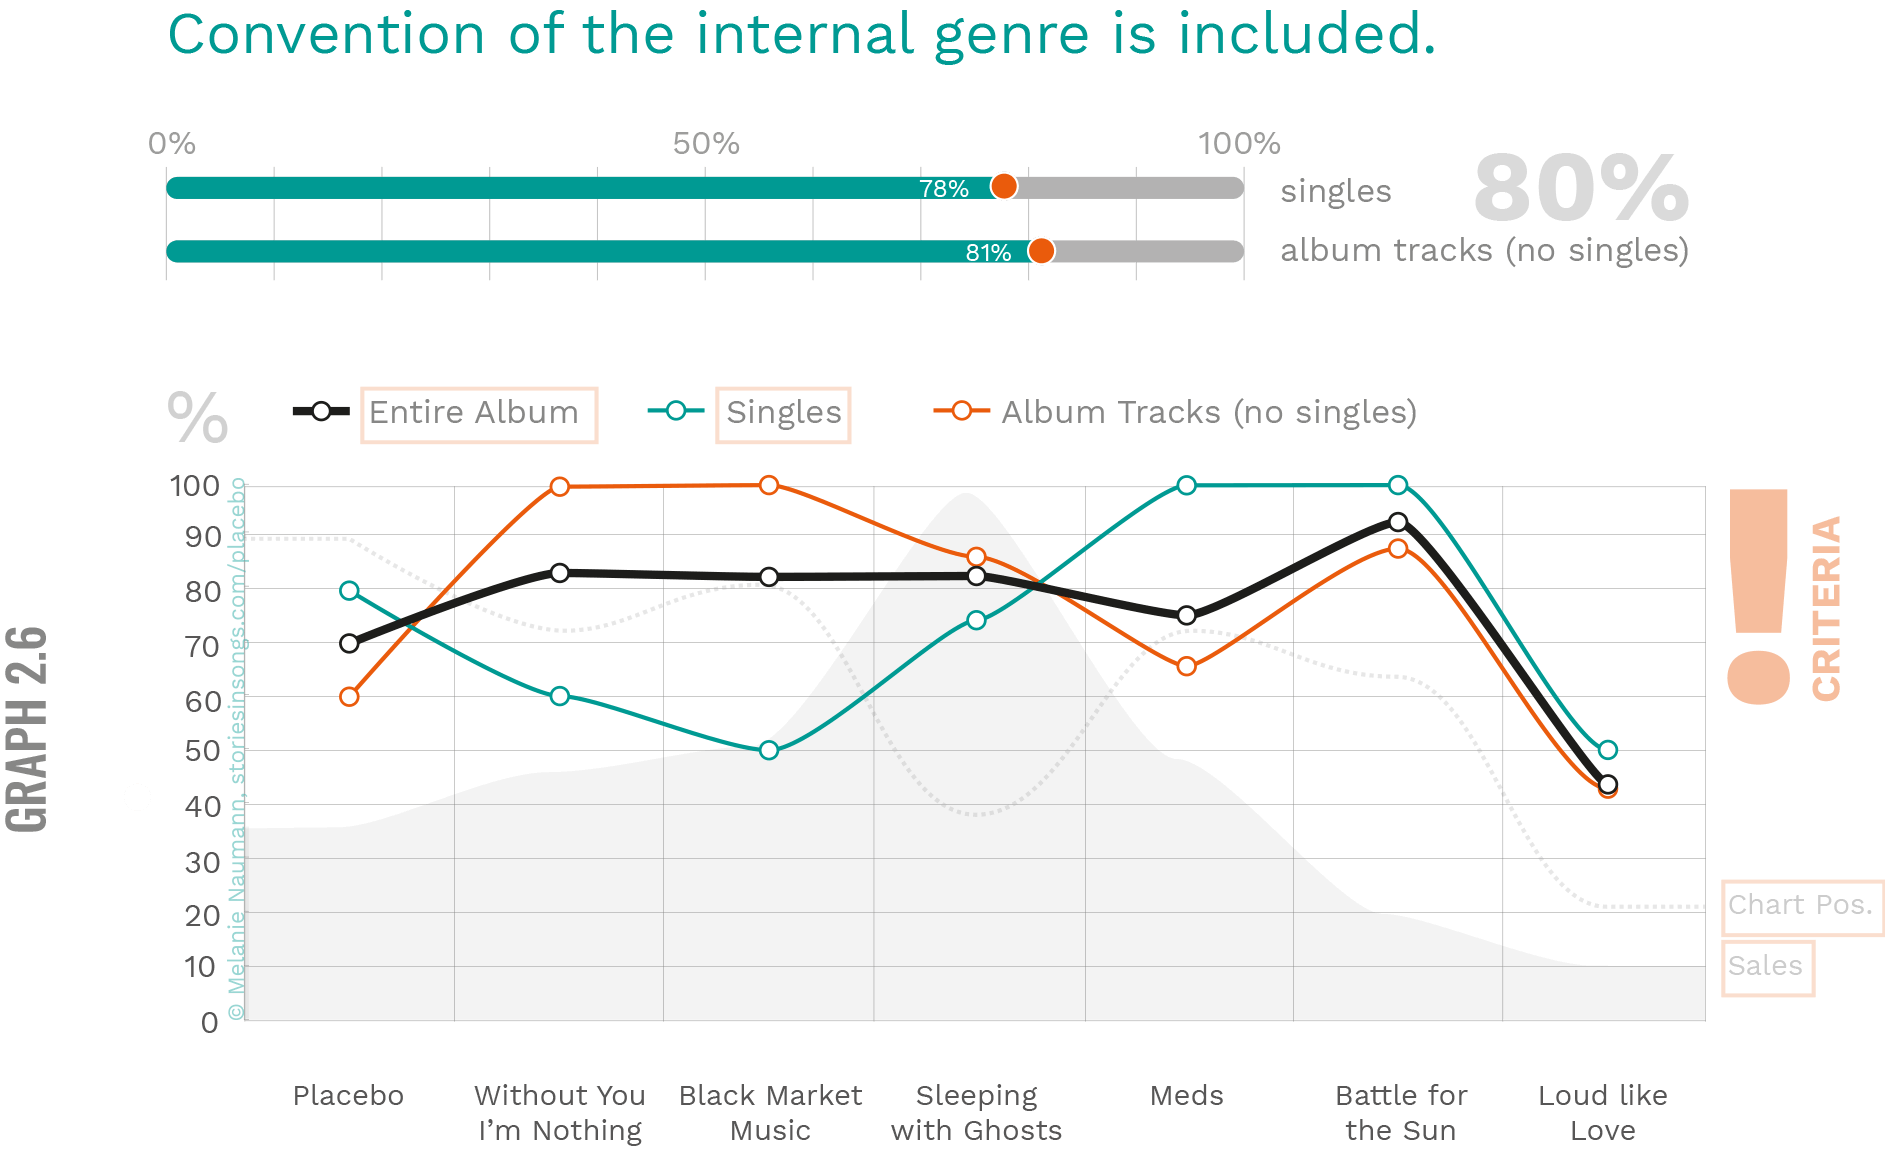 Placebo Infographic Internal Genre